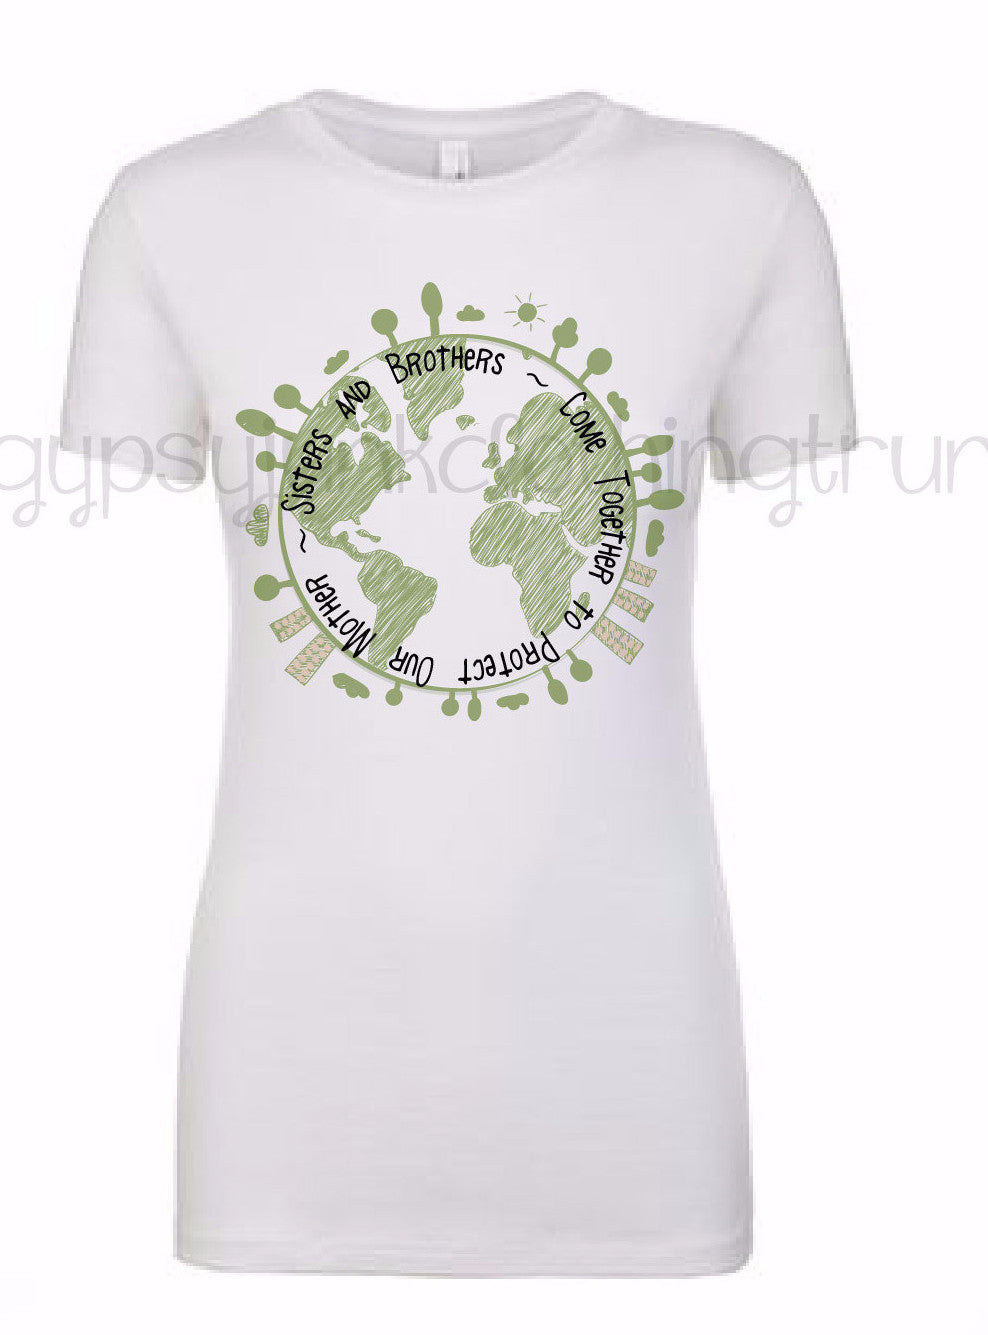 Earth Day Shirt - Save the Earth Shirt - Climate Change Shirt - World Movement - Gypsy Junk Clothing Trunk